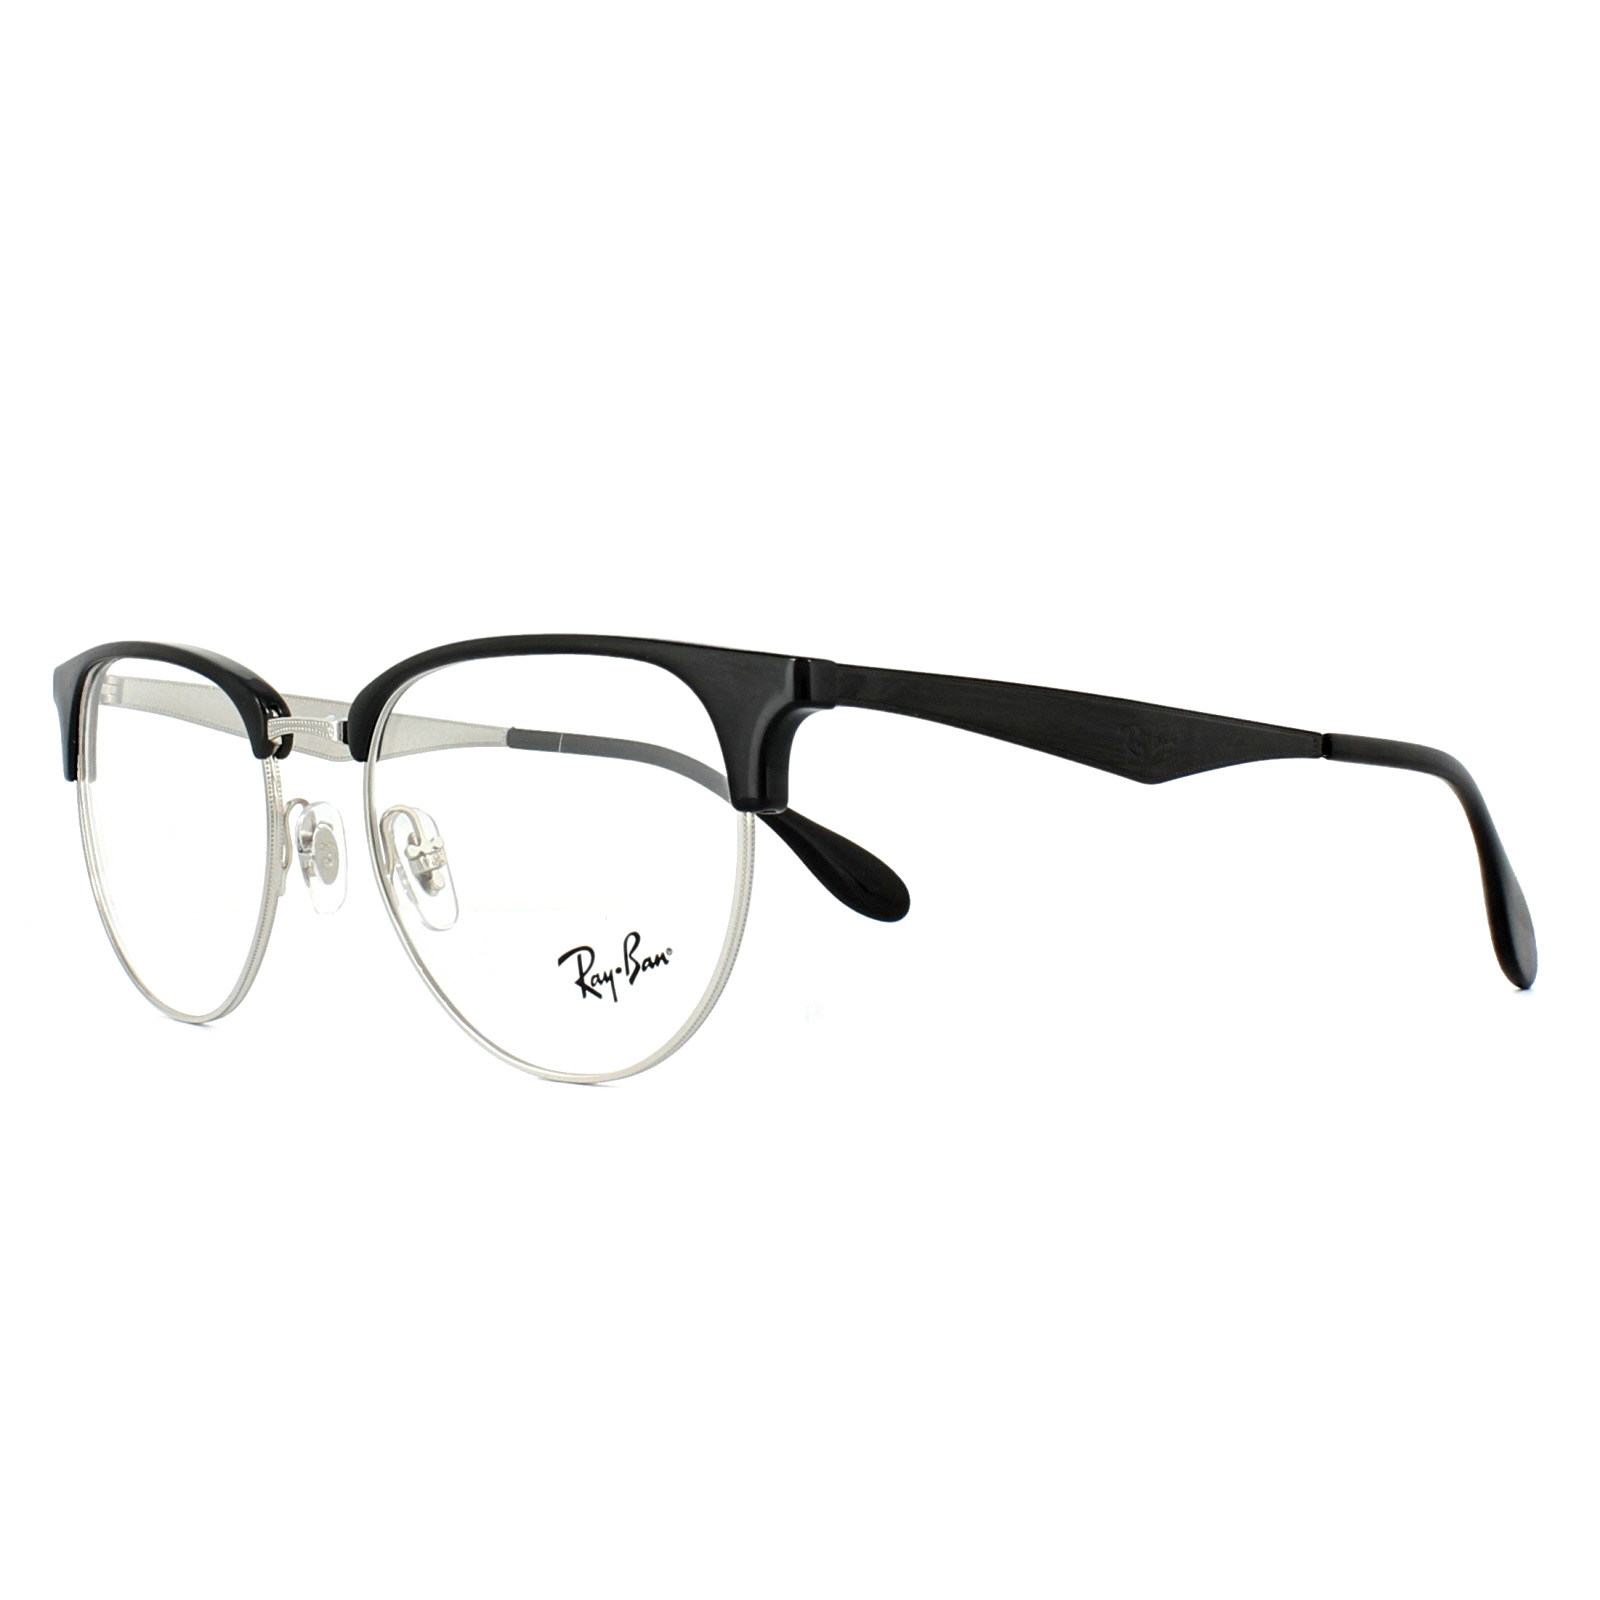 55a04d2d84 Sentinel Ray-Ban Glasses Frames 6396 2932 Silver Black 53mm Mens